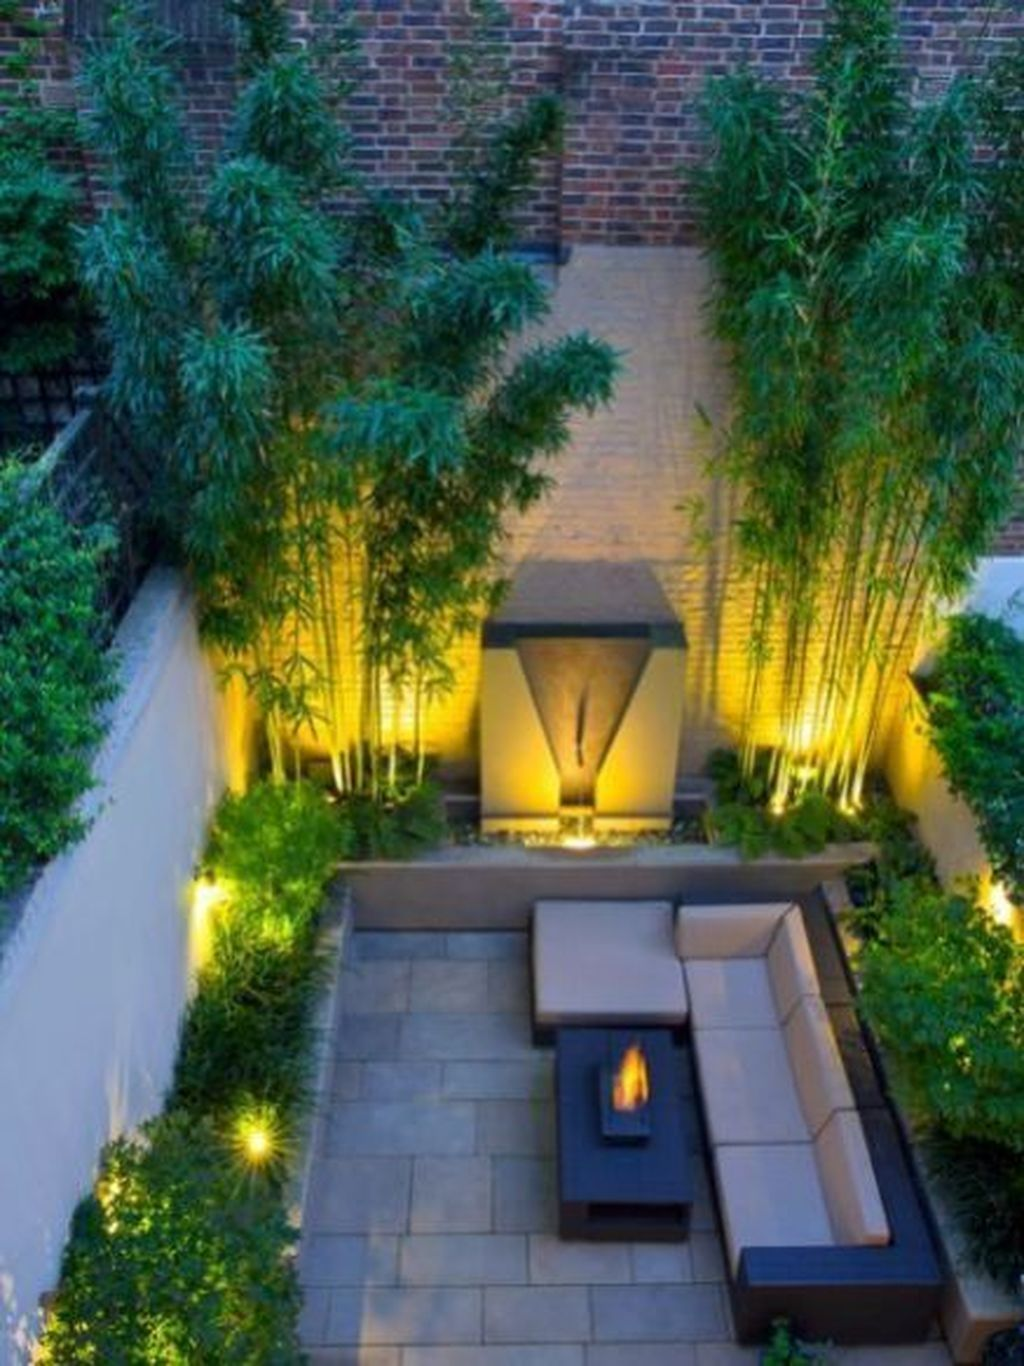 38 Relaxing Terrace Garden Design Ideas With Lighting ...